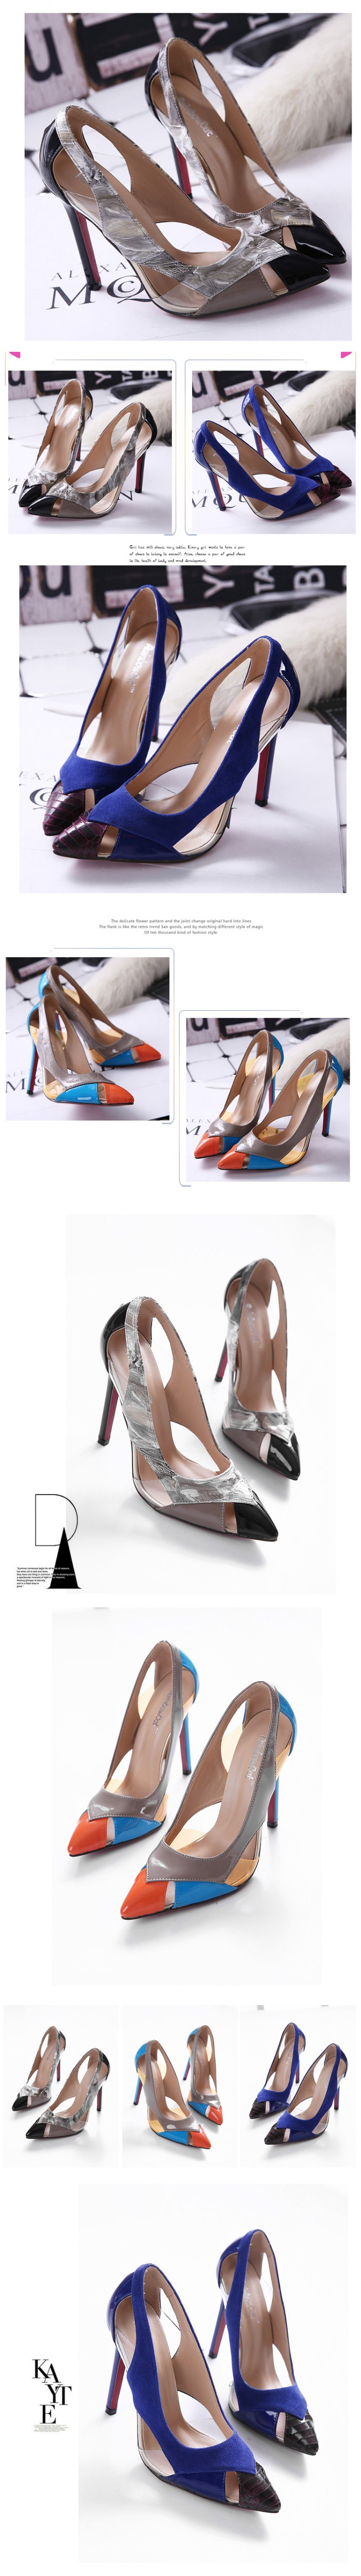 2016 New Spring Fall Pointed Toe Red Bottom Wedding Pumps For Women Thin High Heels Shoes Black Women High-heeled Shoes ZK3.5